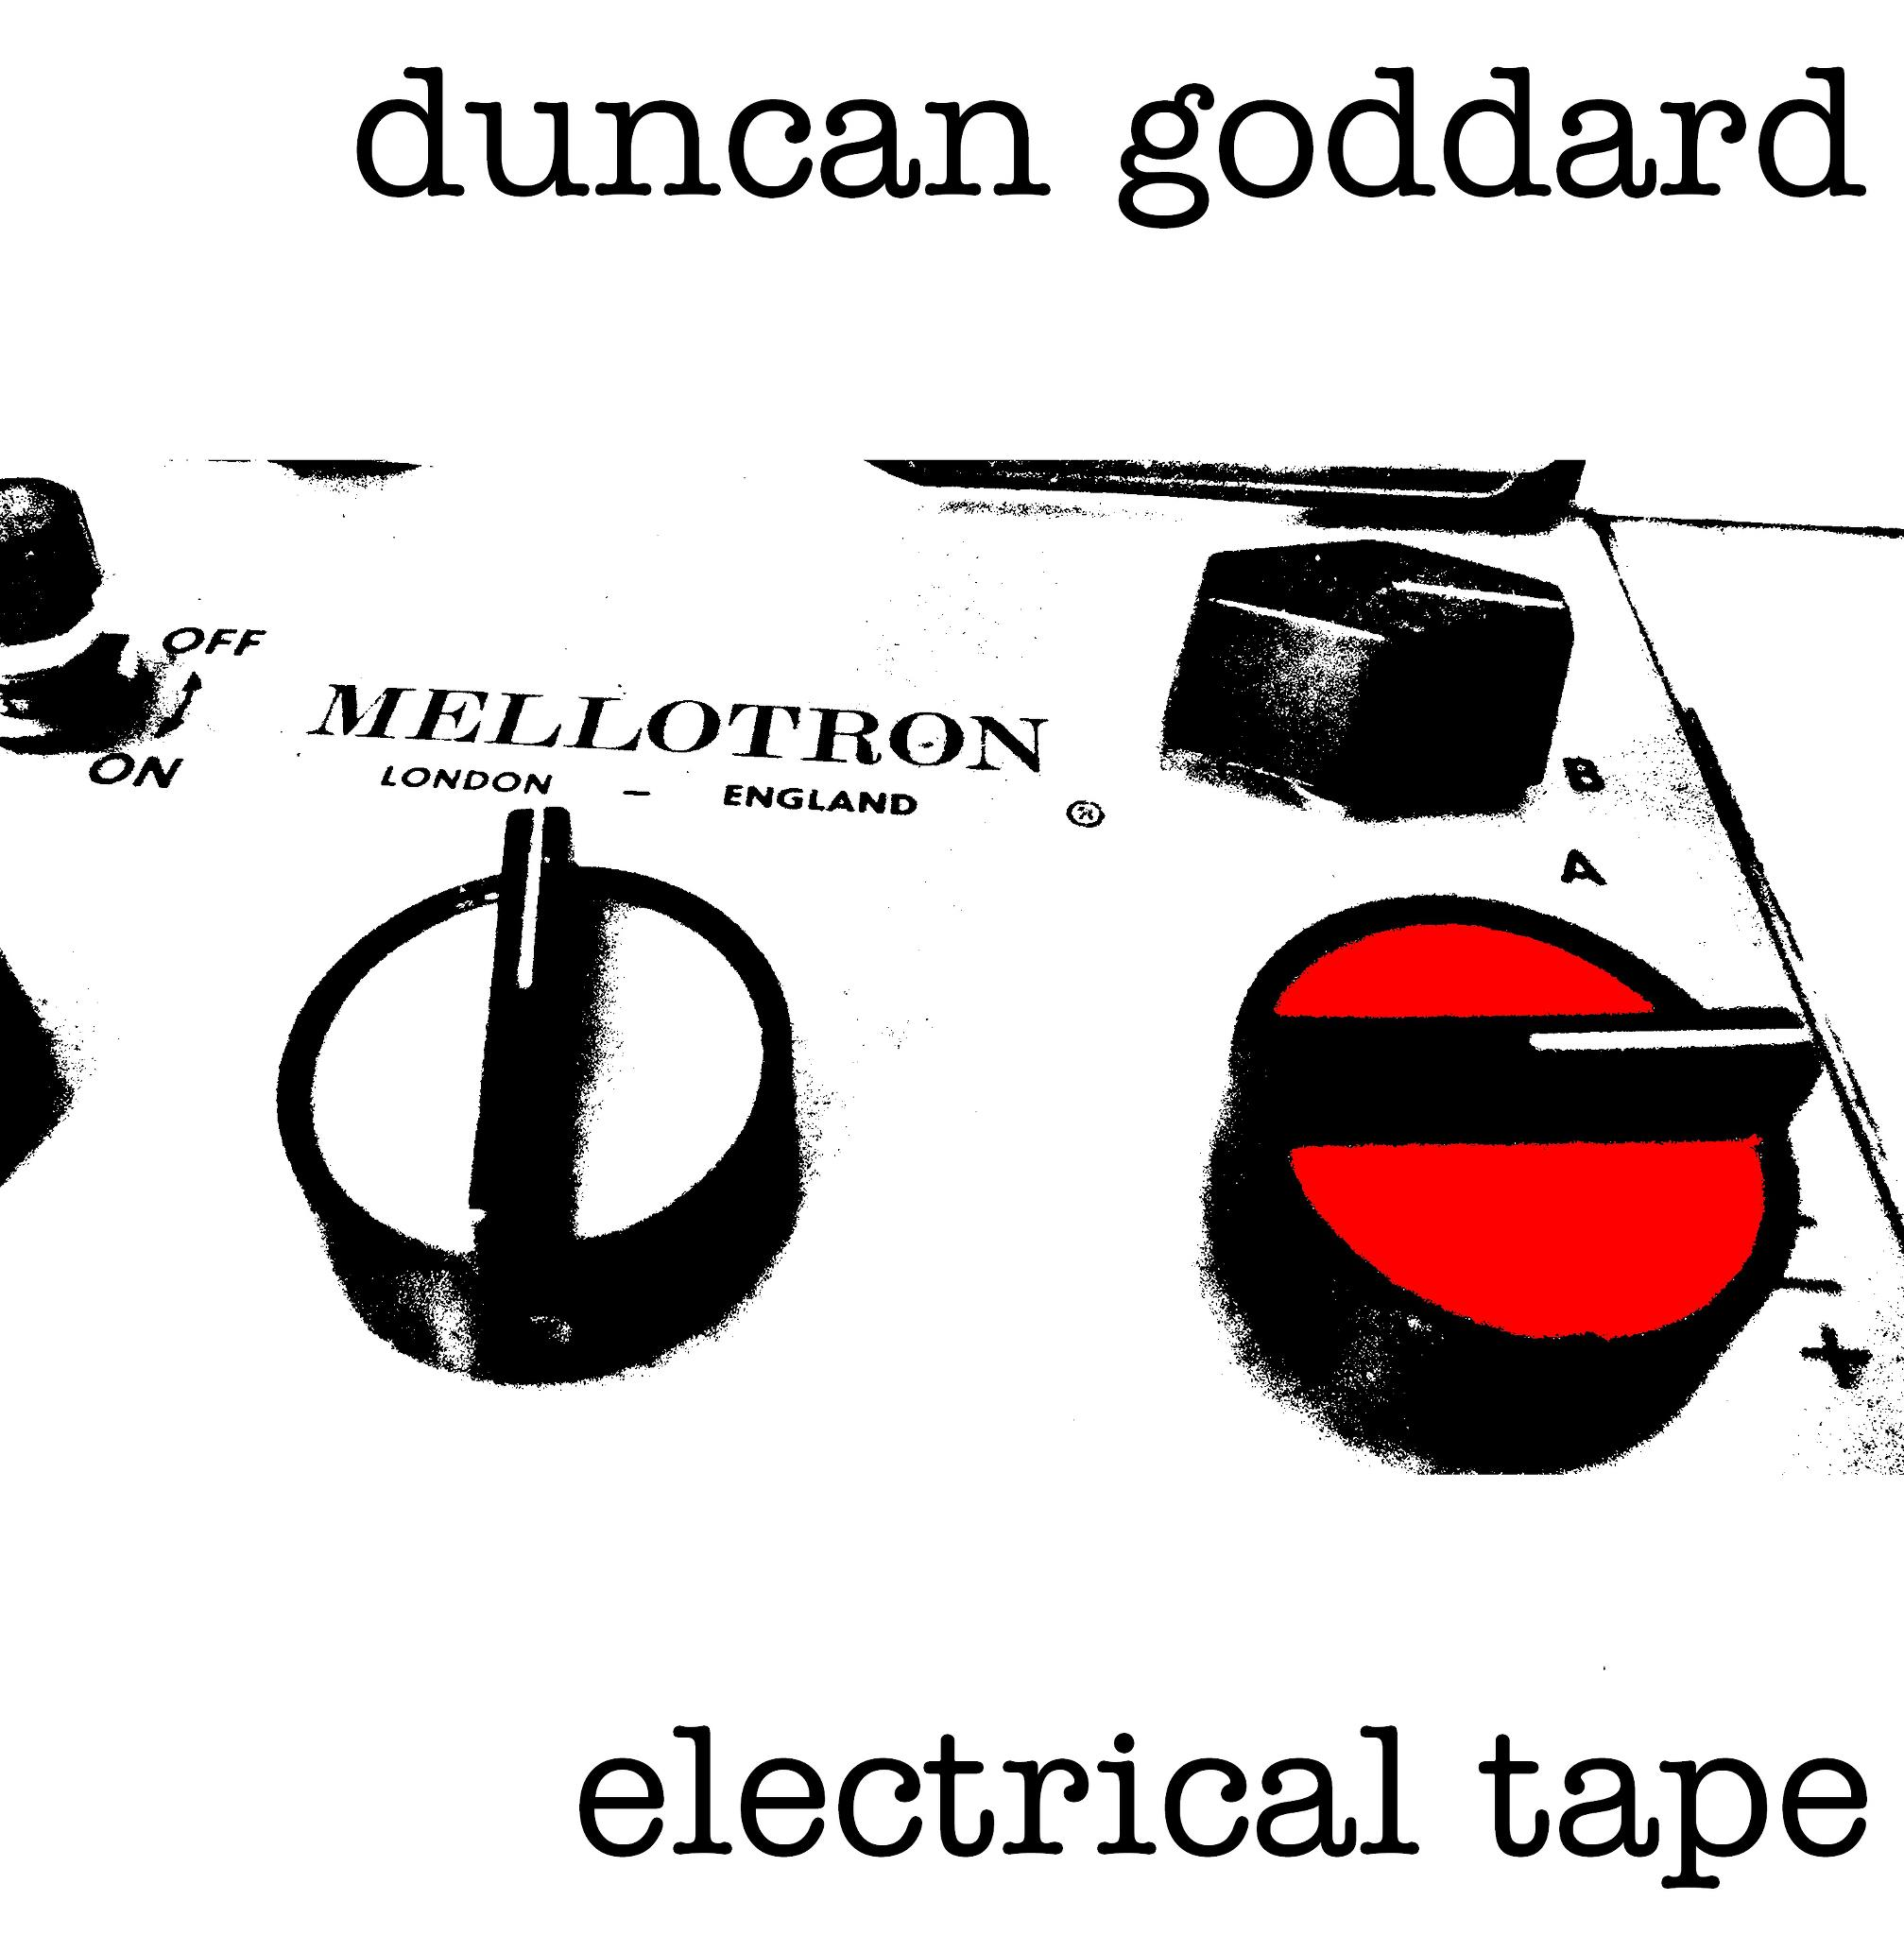 duncan goddard: electrical tape